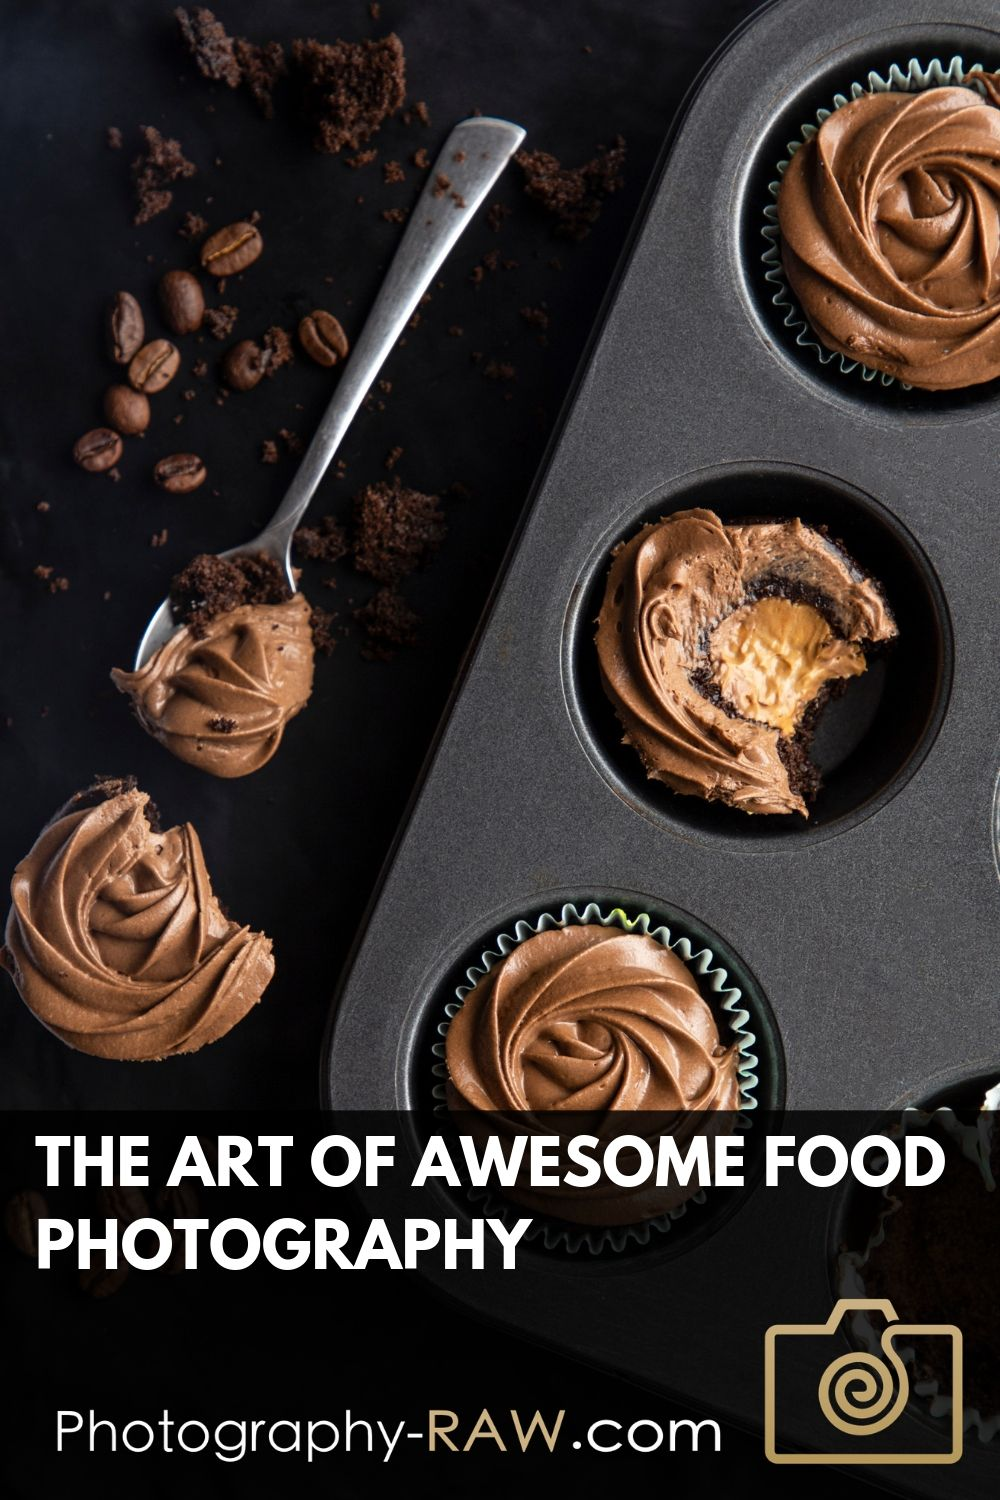 The Art of Awesome Food Photography